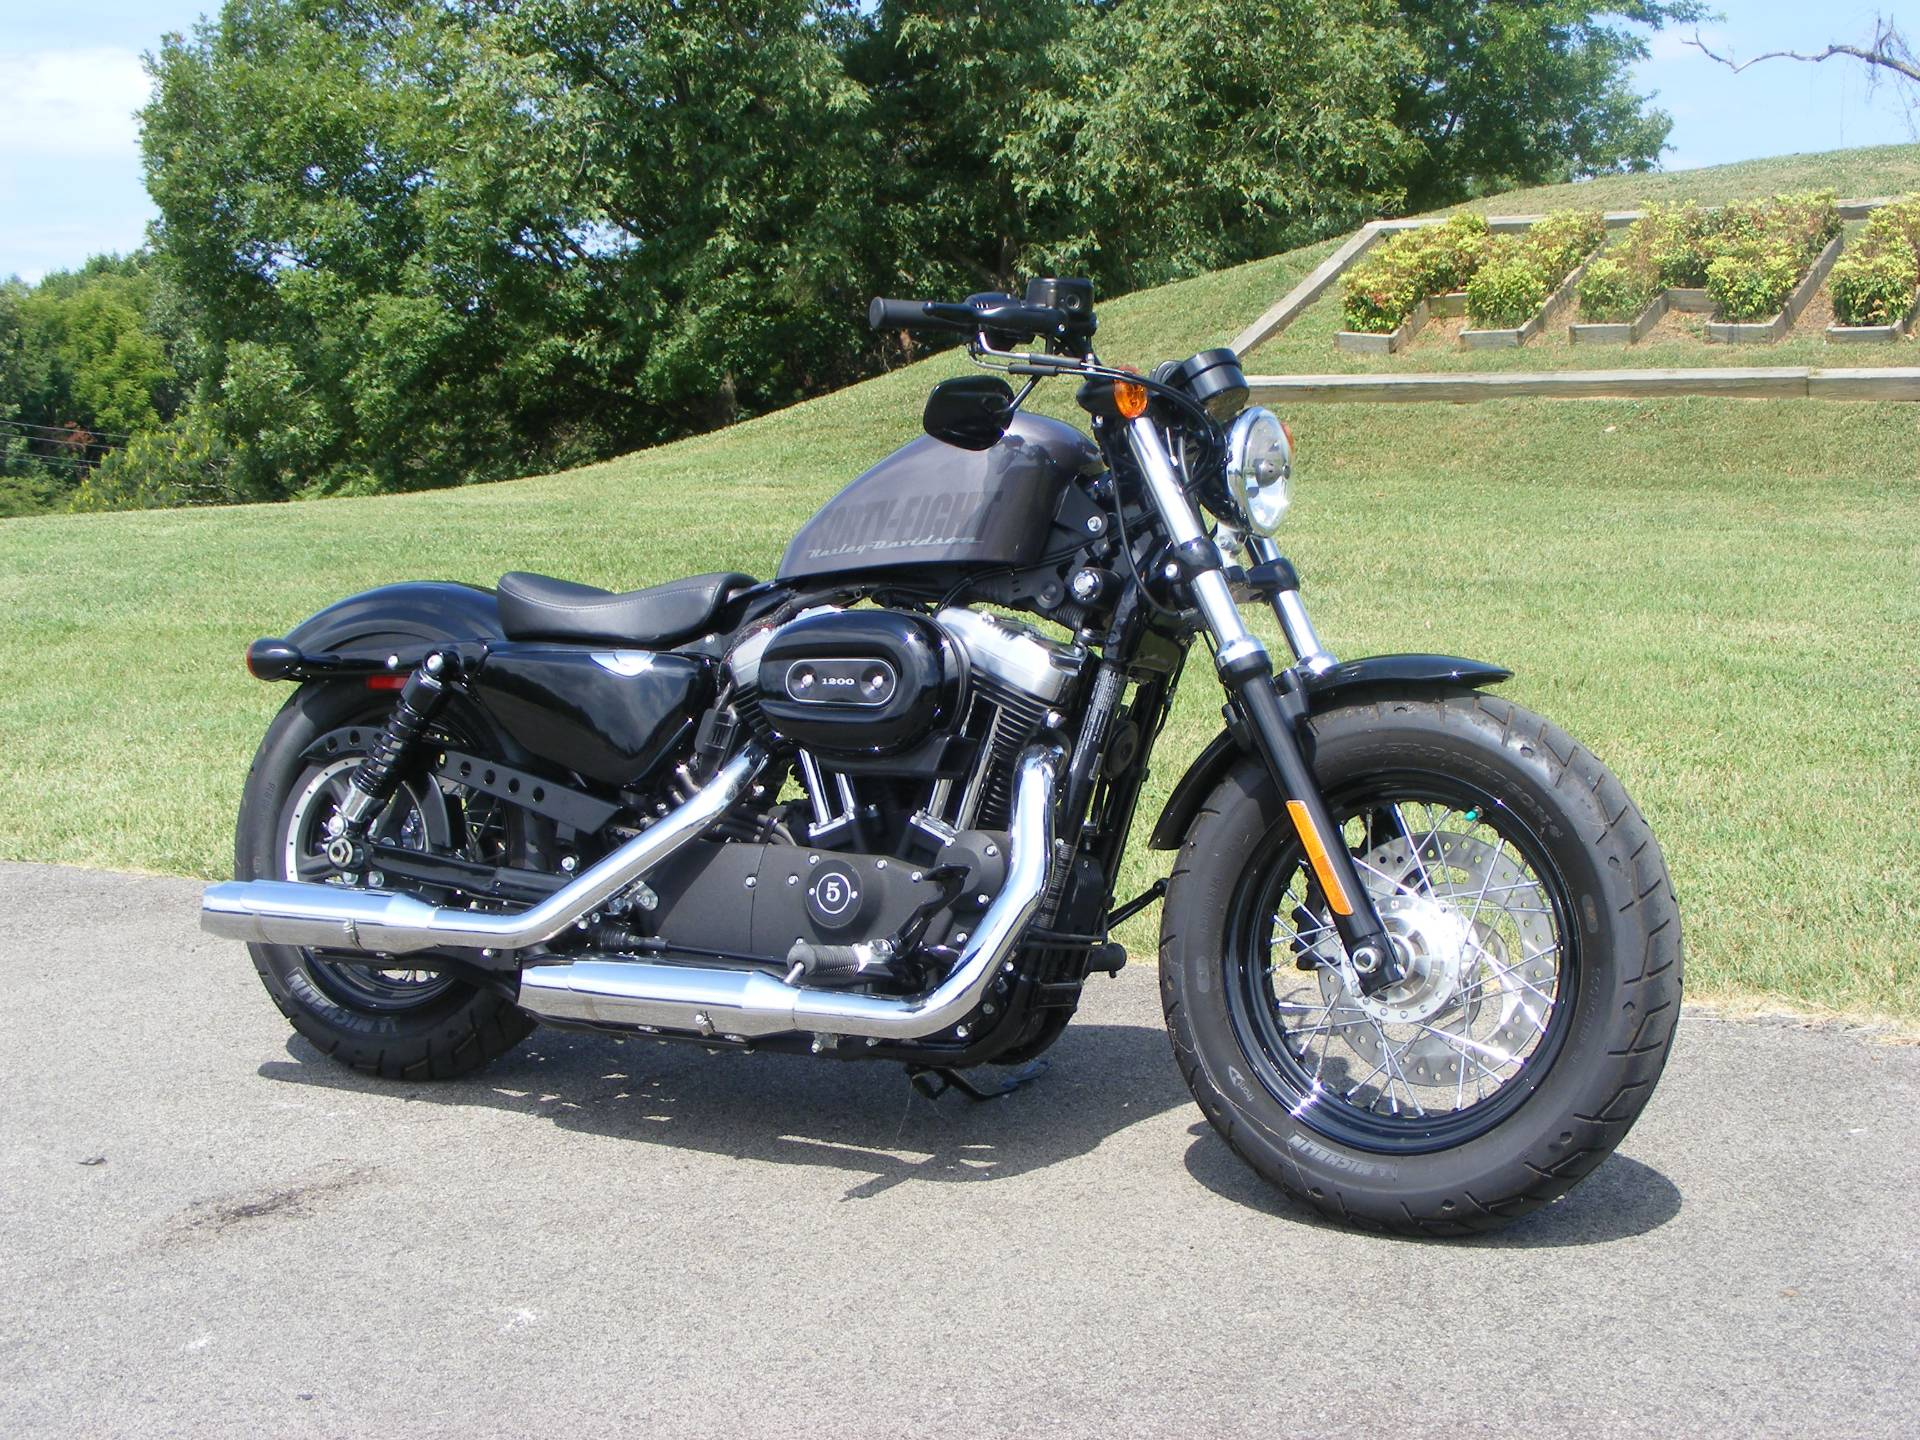 2015 Harley-Davidson 1HD1LC310FC444700 in Morristown, Tennessee - Photo 2